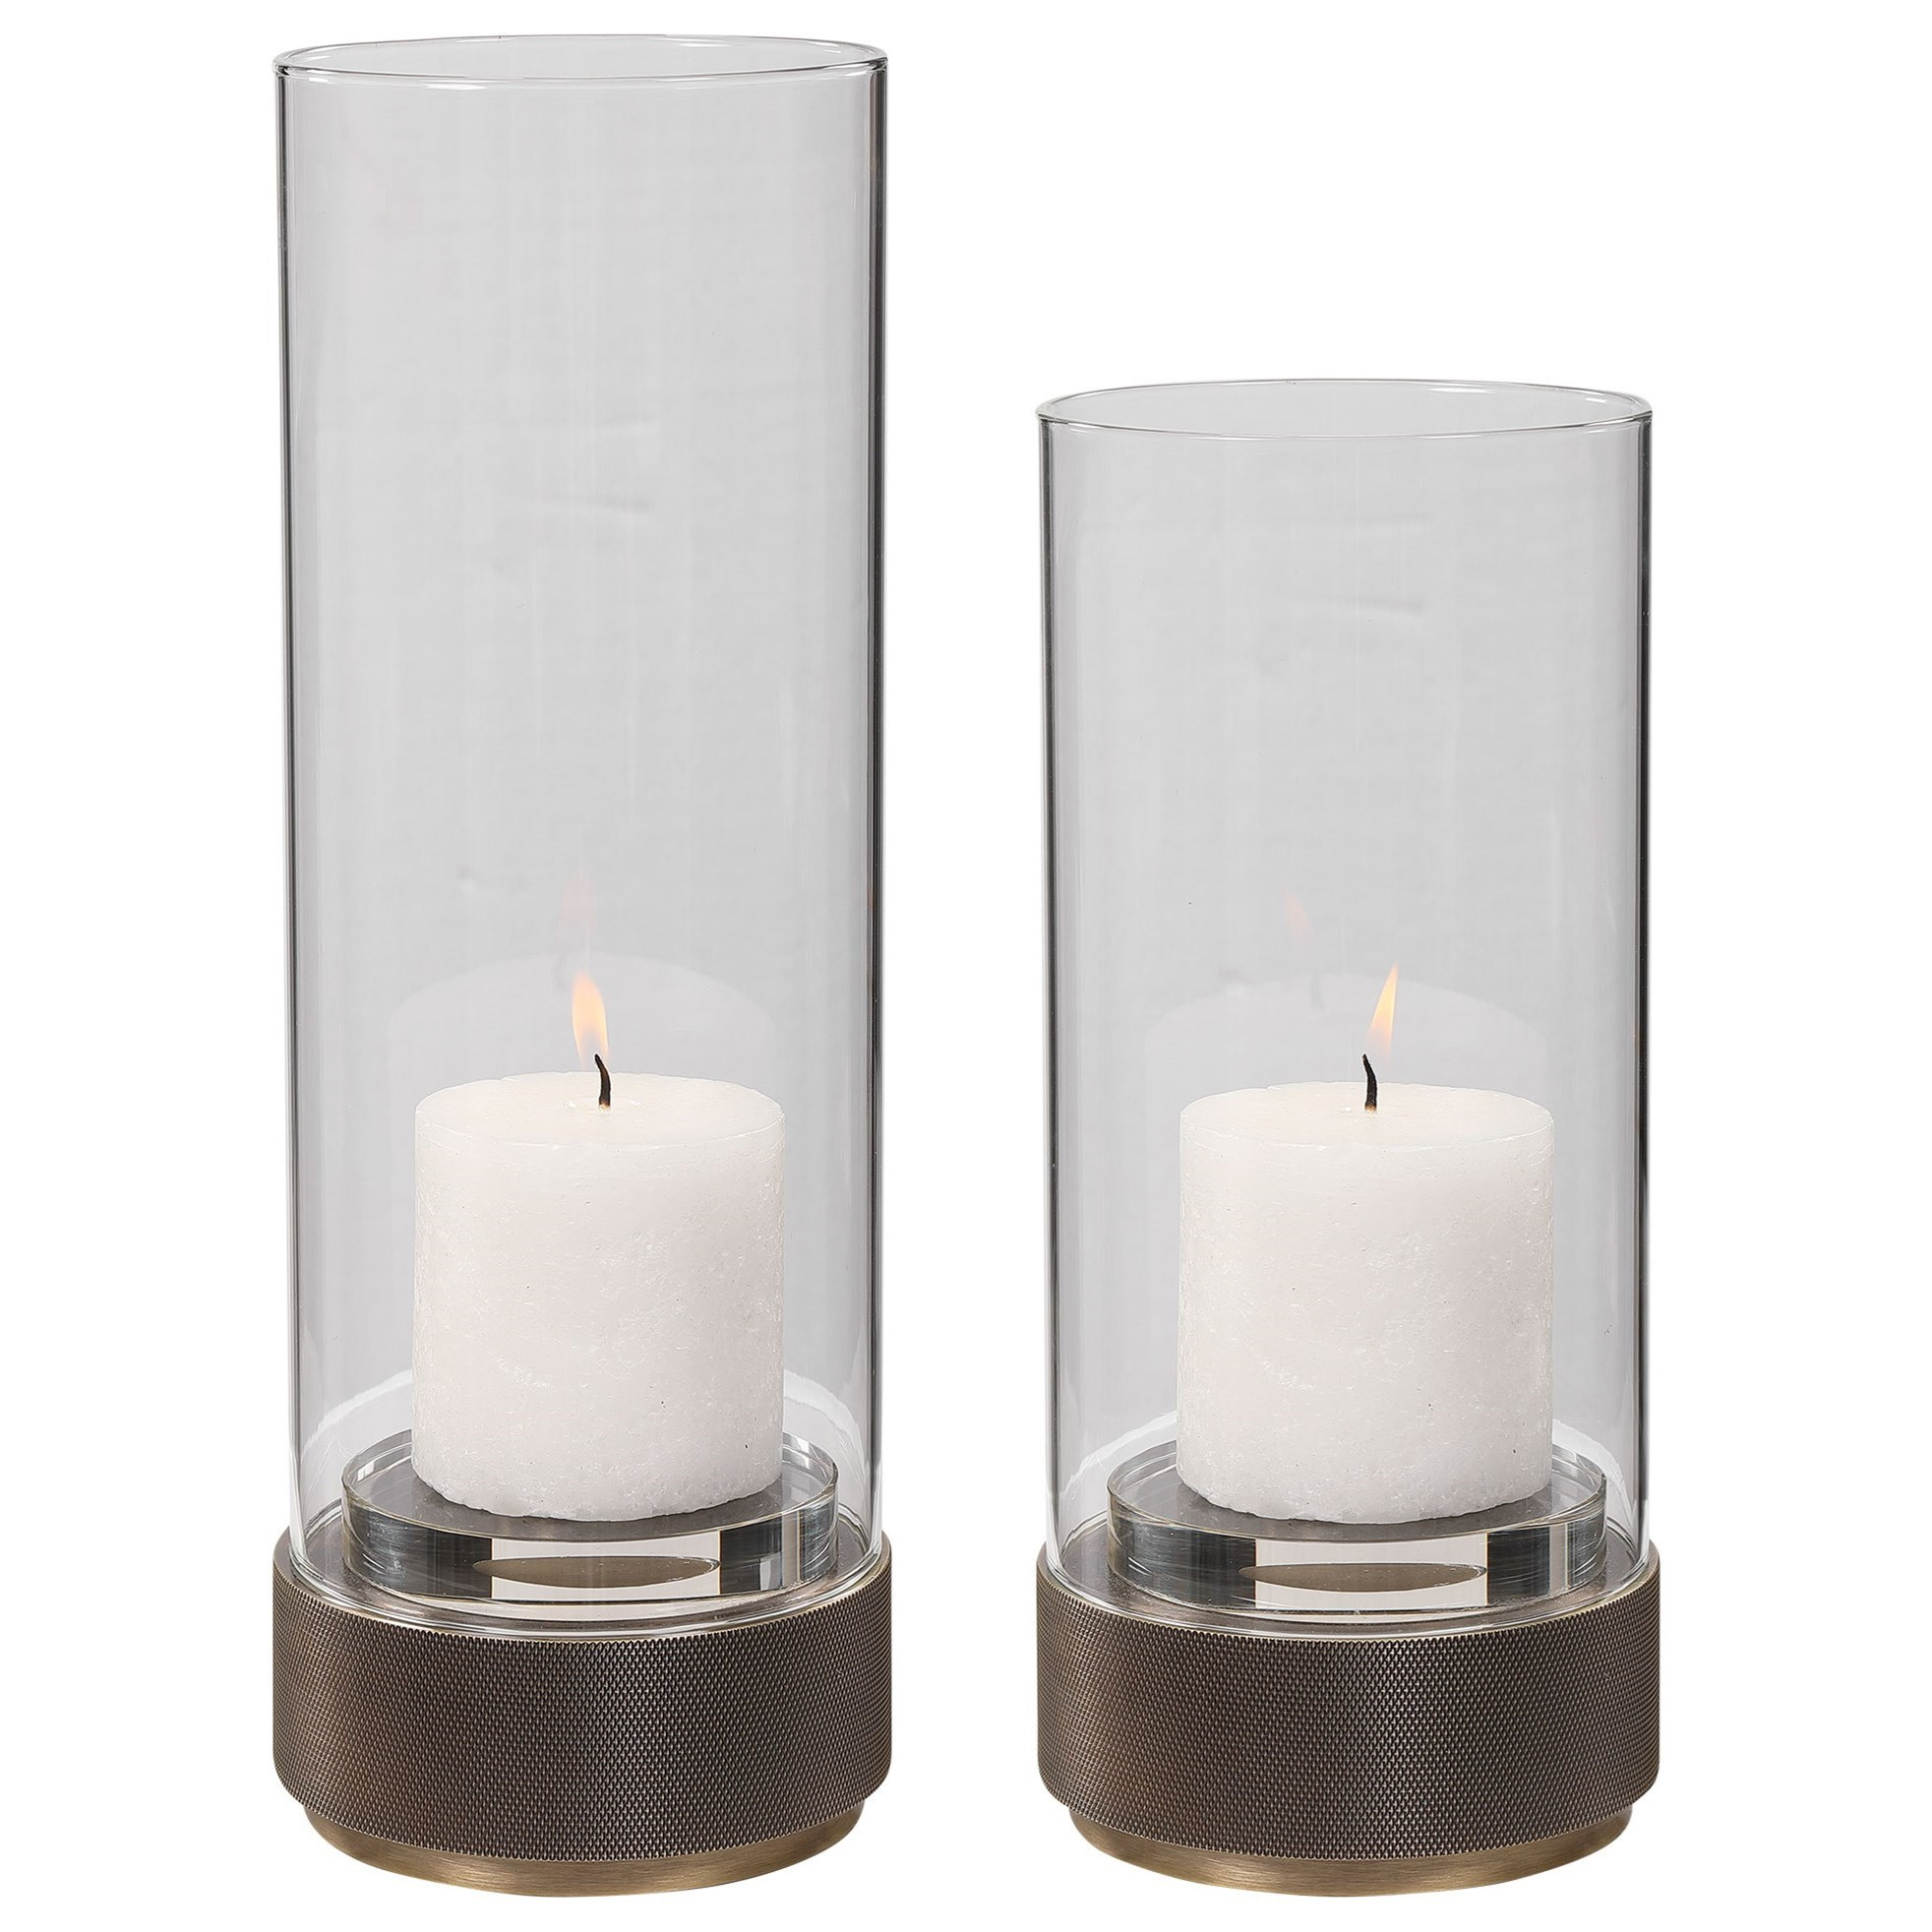 Accessories - Candle Holders Sandringham Brushed Brass Candleholders, S/2 by Uttermost at Dunk & Bright Furniture